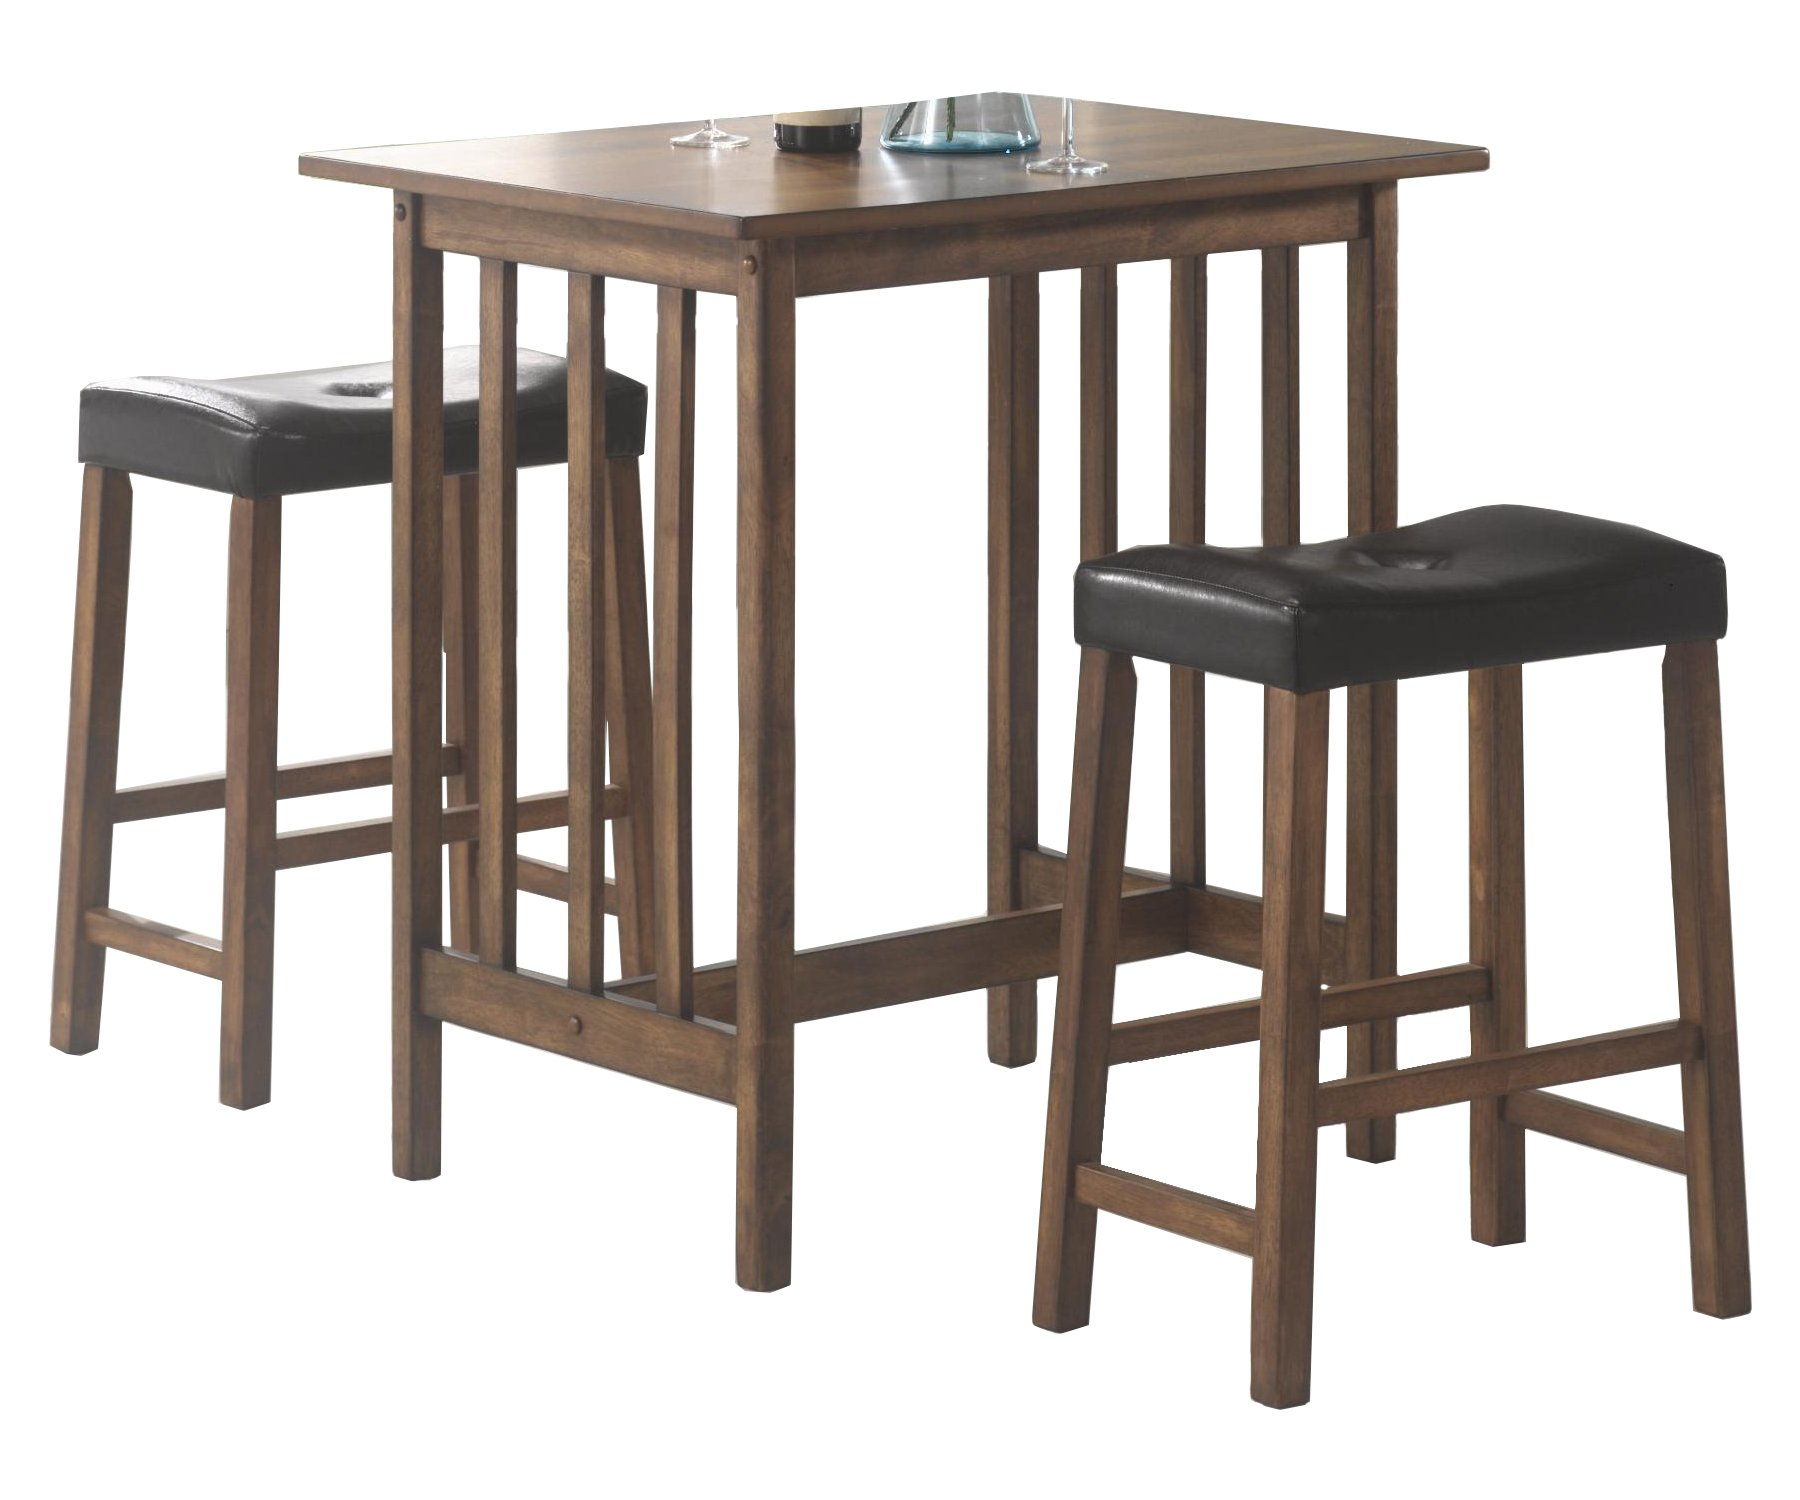 Coaster Home Furnishings CO-130004 3 Pc Counter Height Set Nut Brown